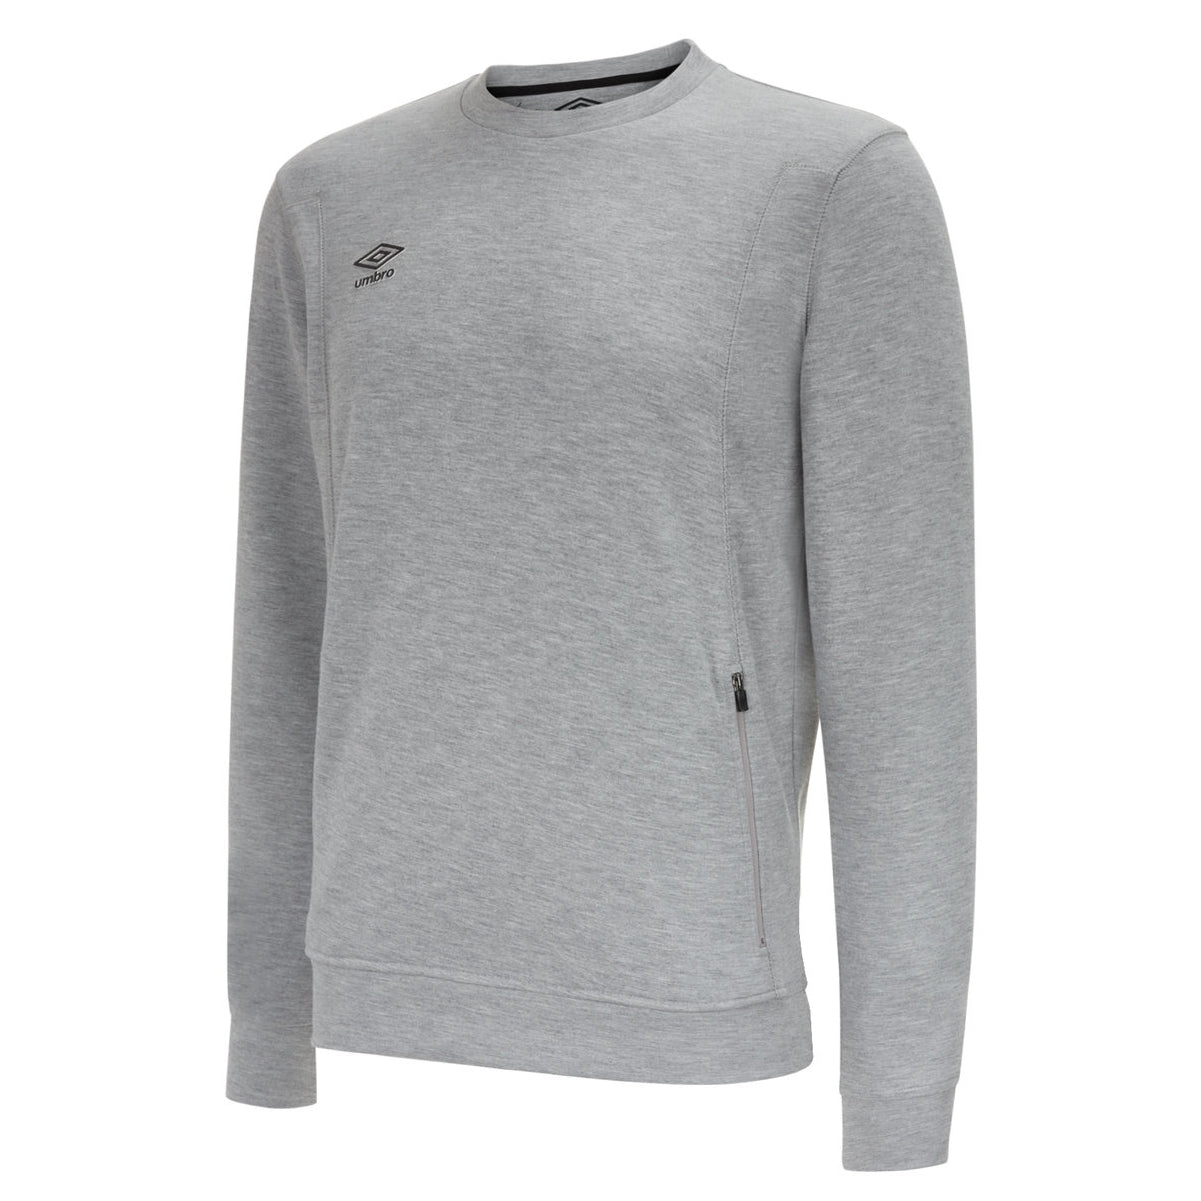 Umbro Pro Fleece Sweat in grey marl with black logo